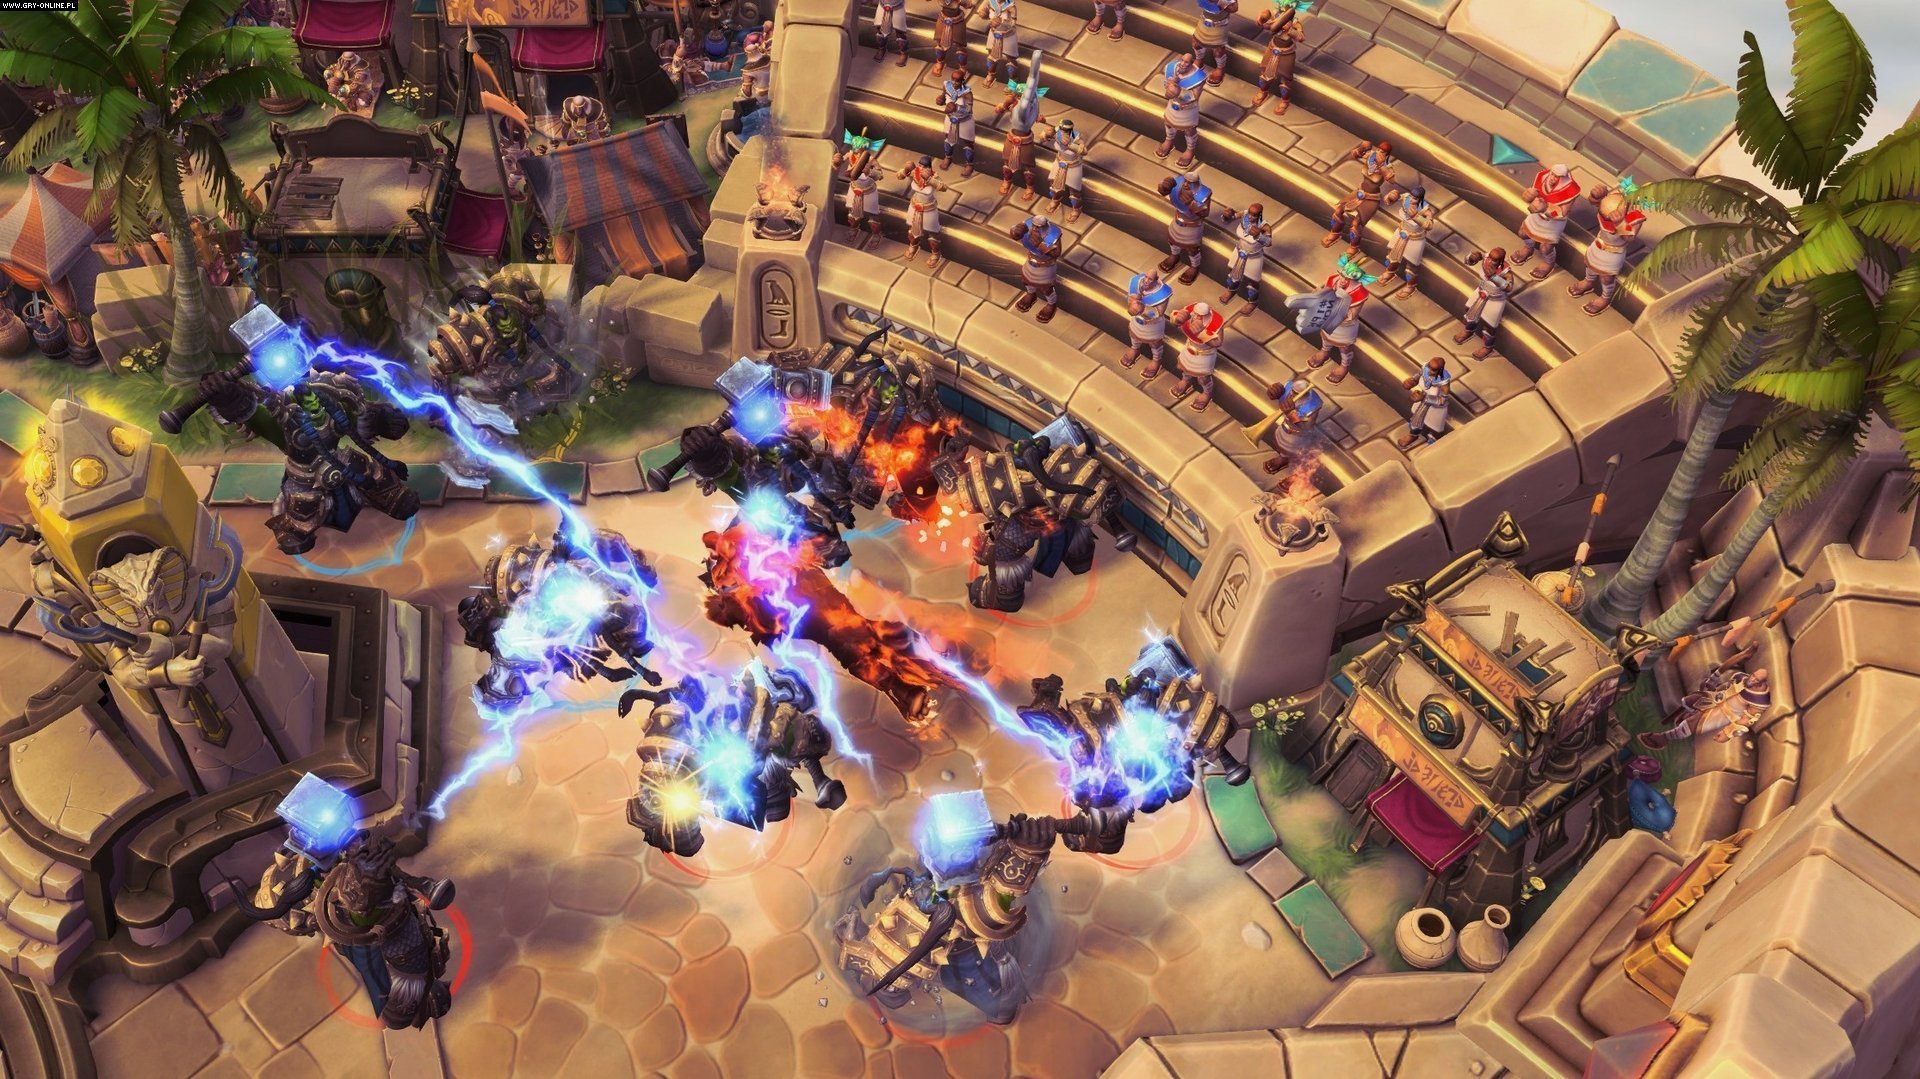 Heroes of the Storm image #5